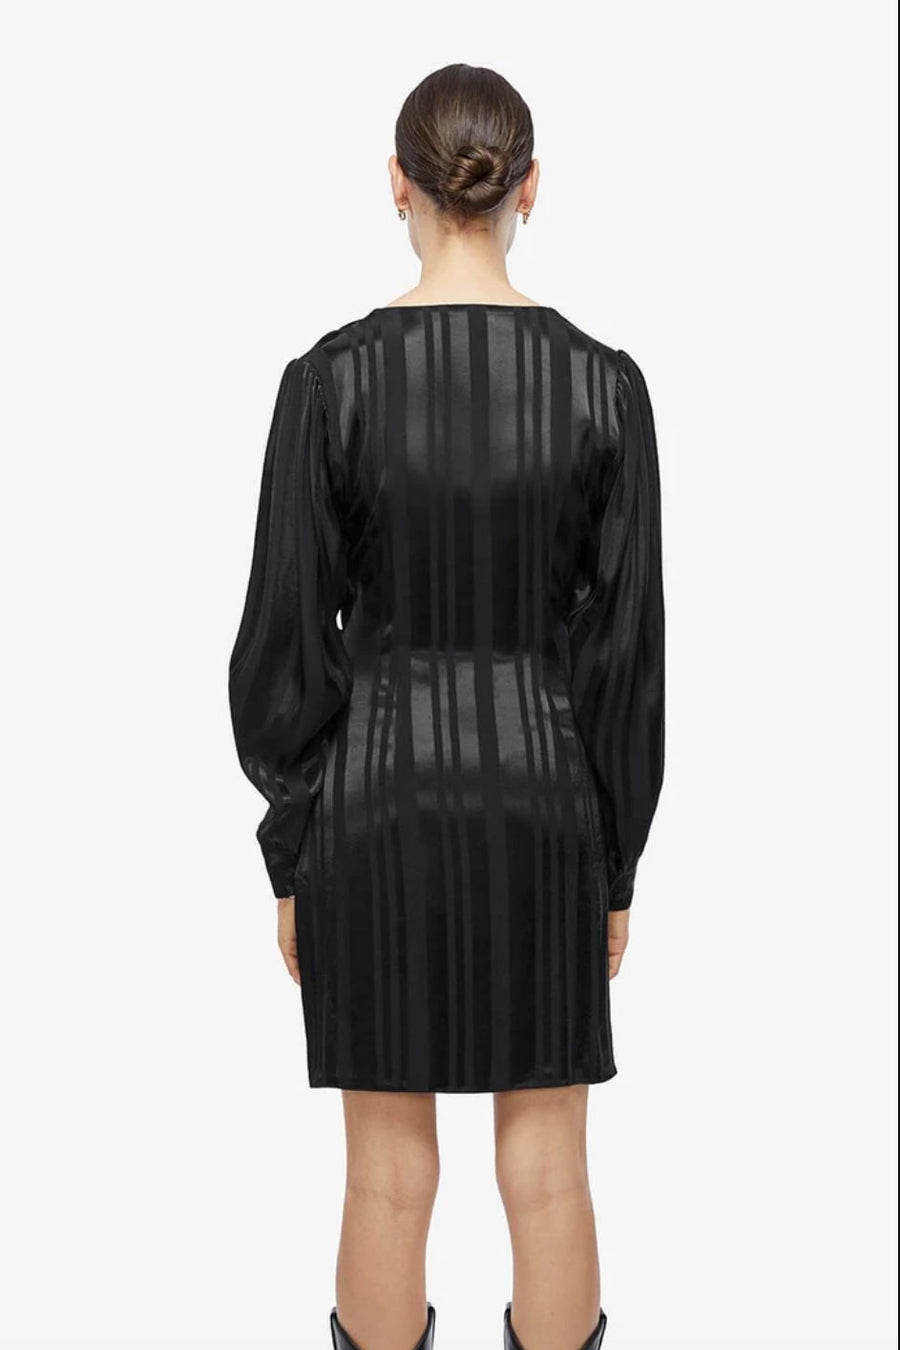 Penelope Dress - Black Tonal Stripe - Pavilion